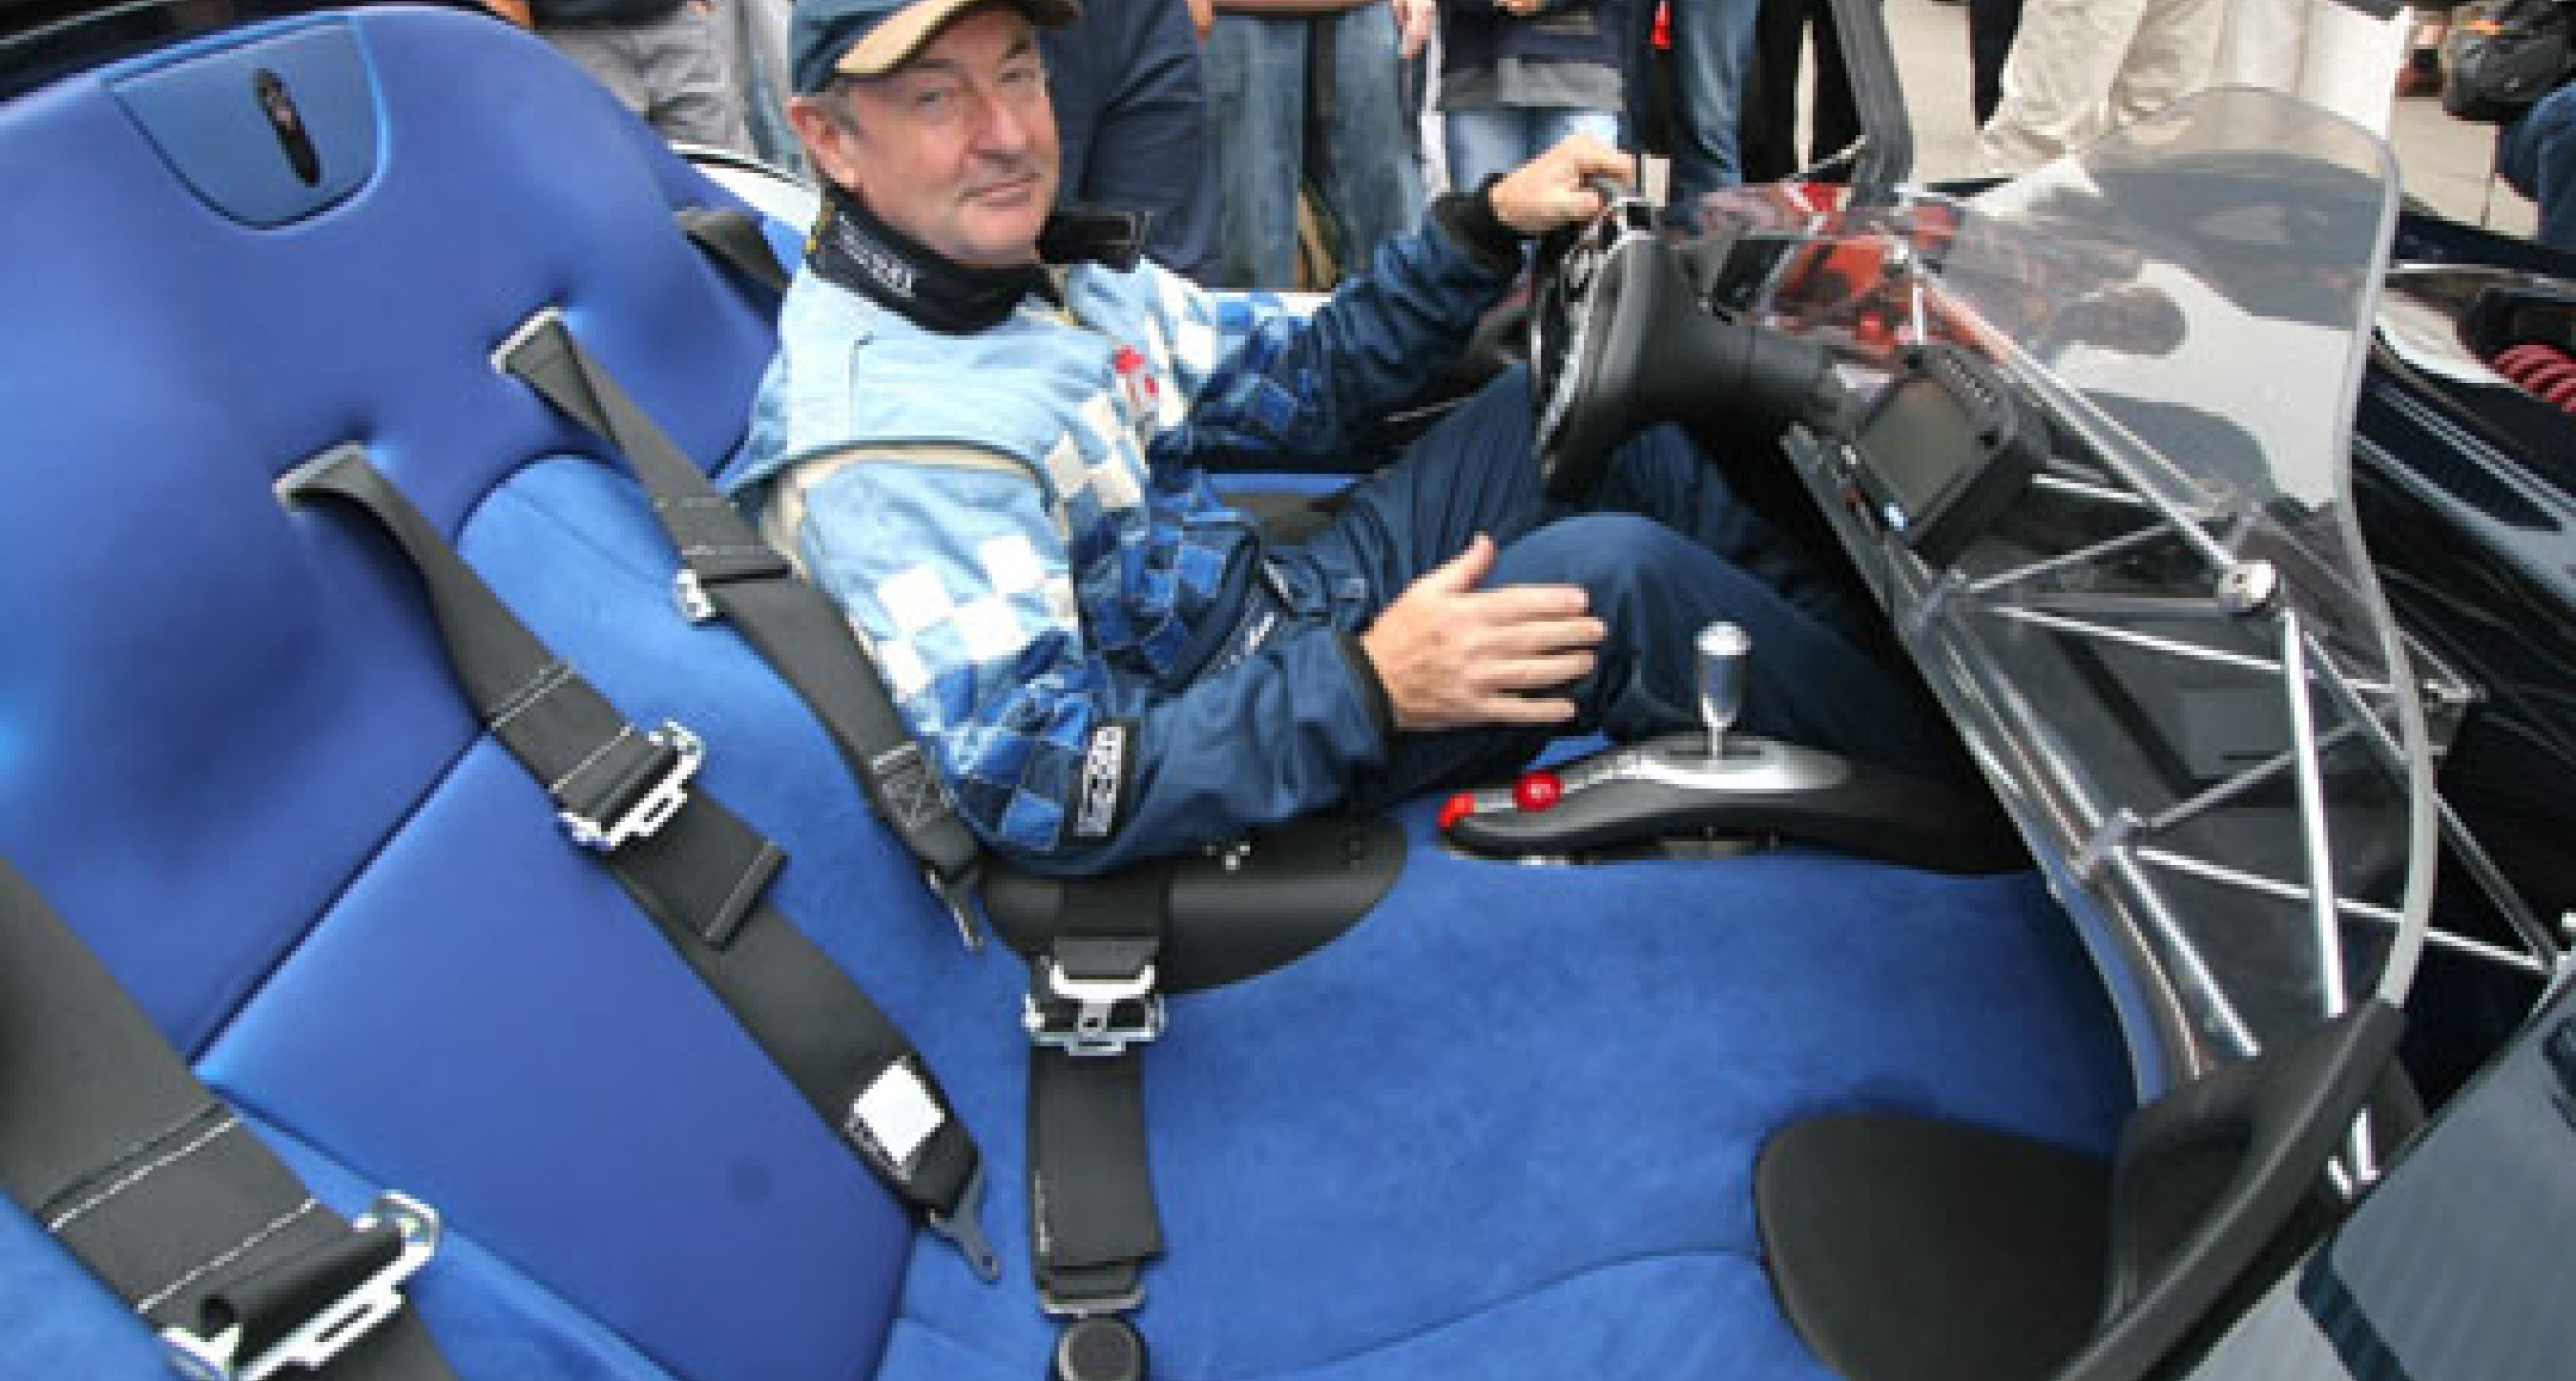 Maserati Birdcage 75th makes its world driving debut at Goodwood Festival of Speed